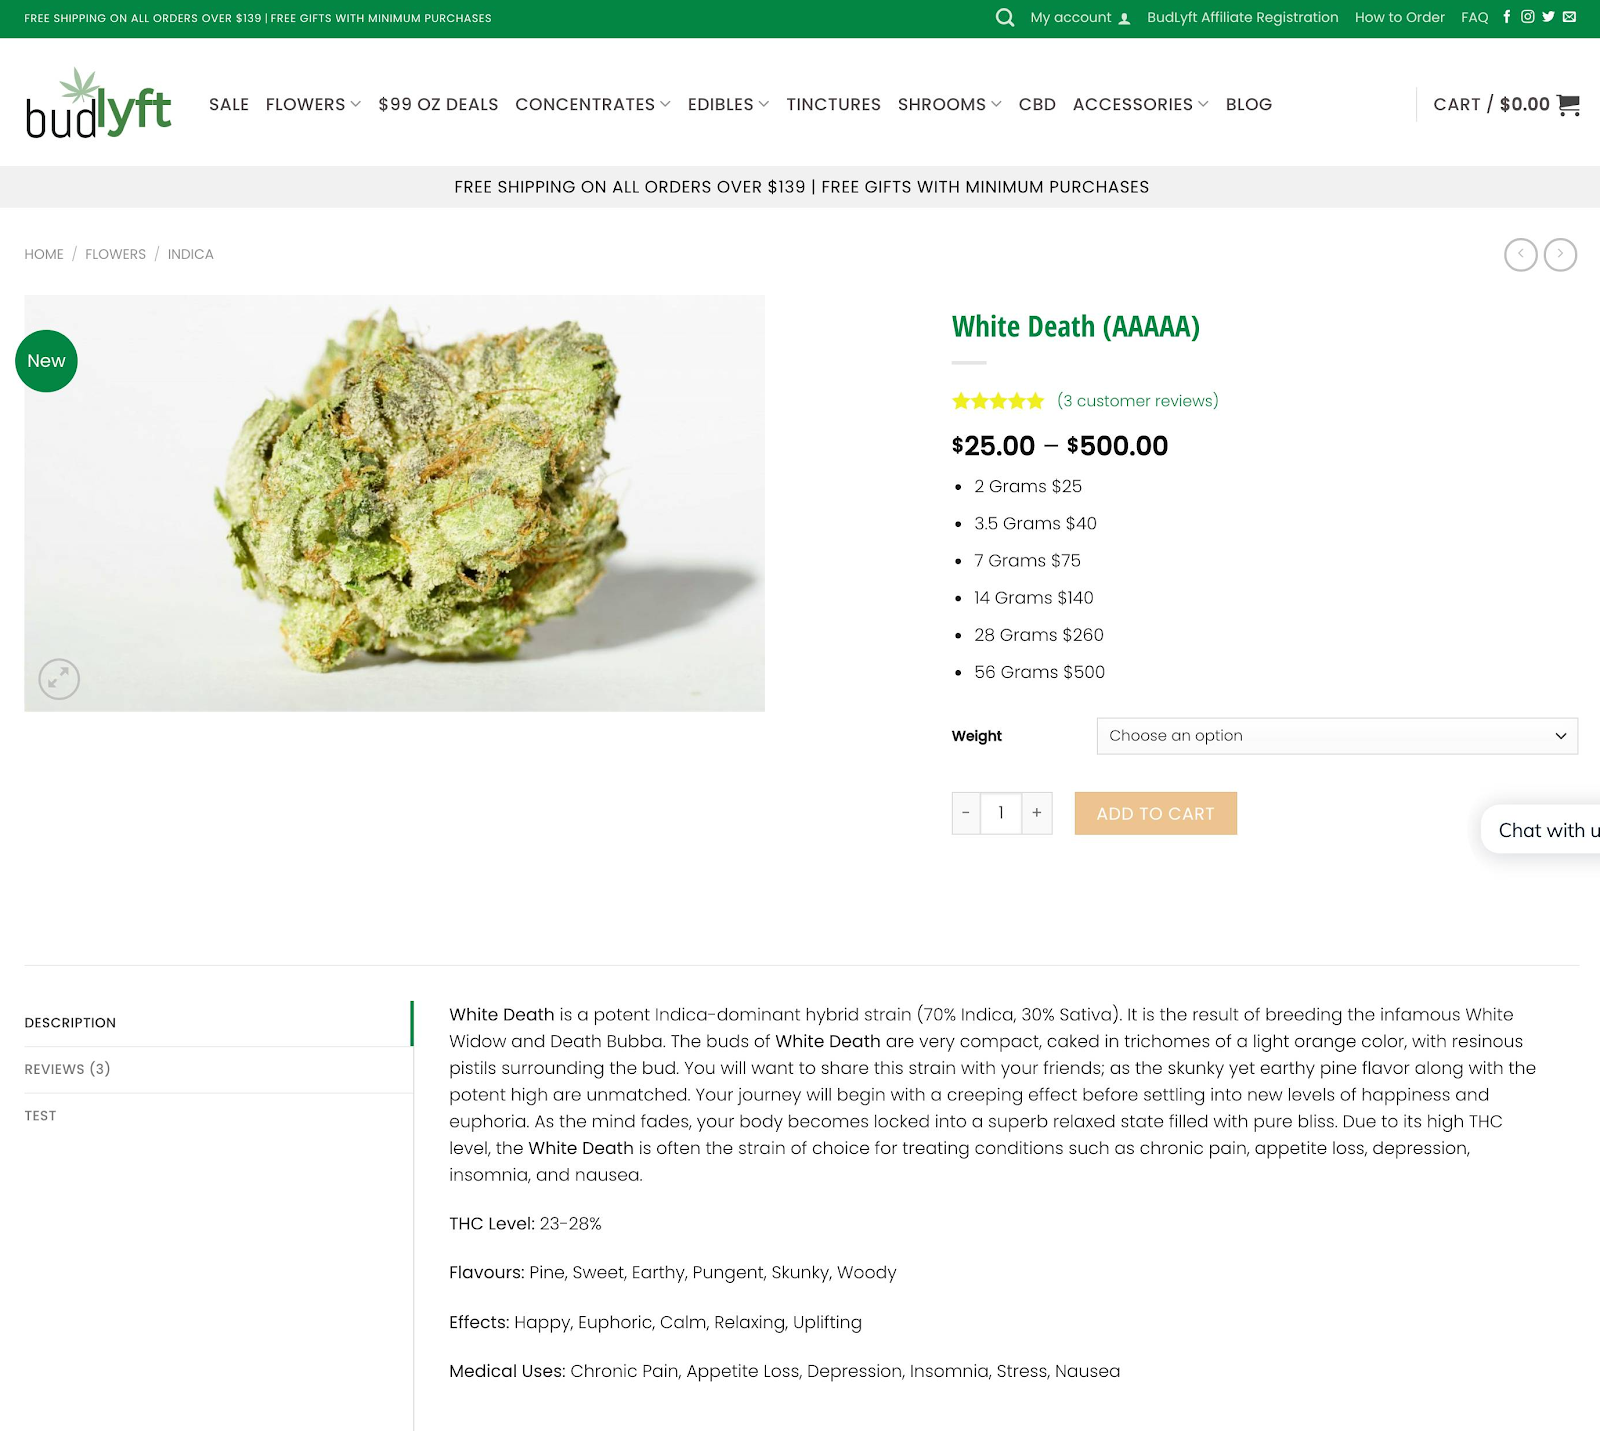 Buy Weed Online - Product Description Page